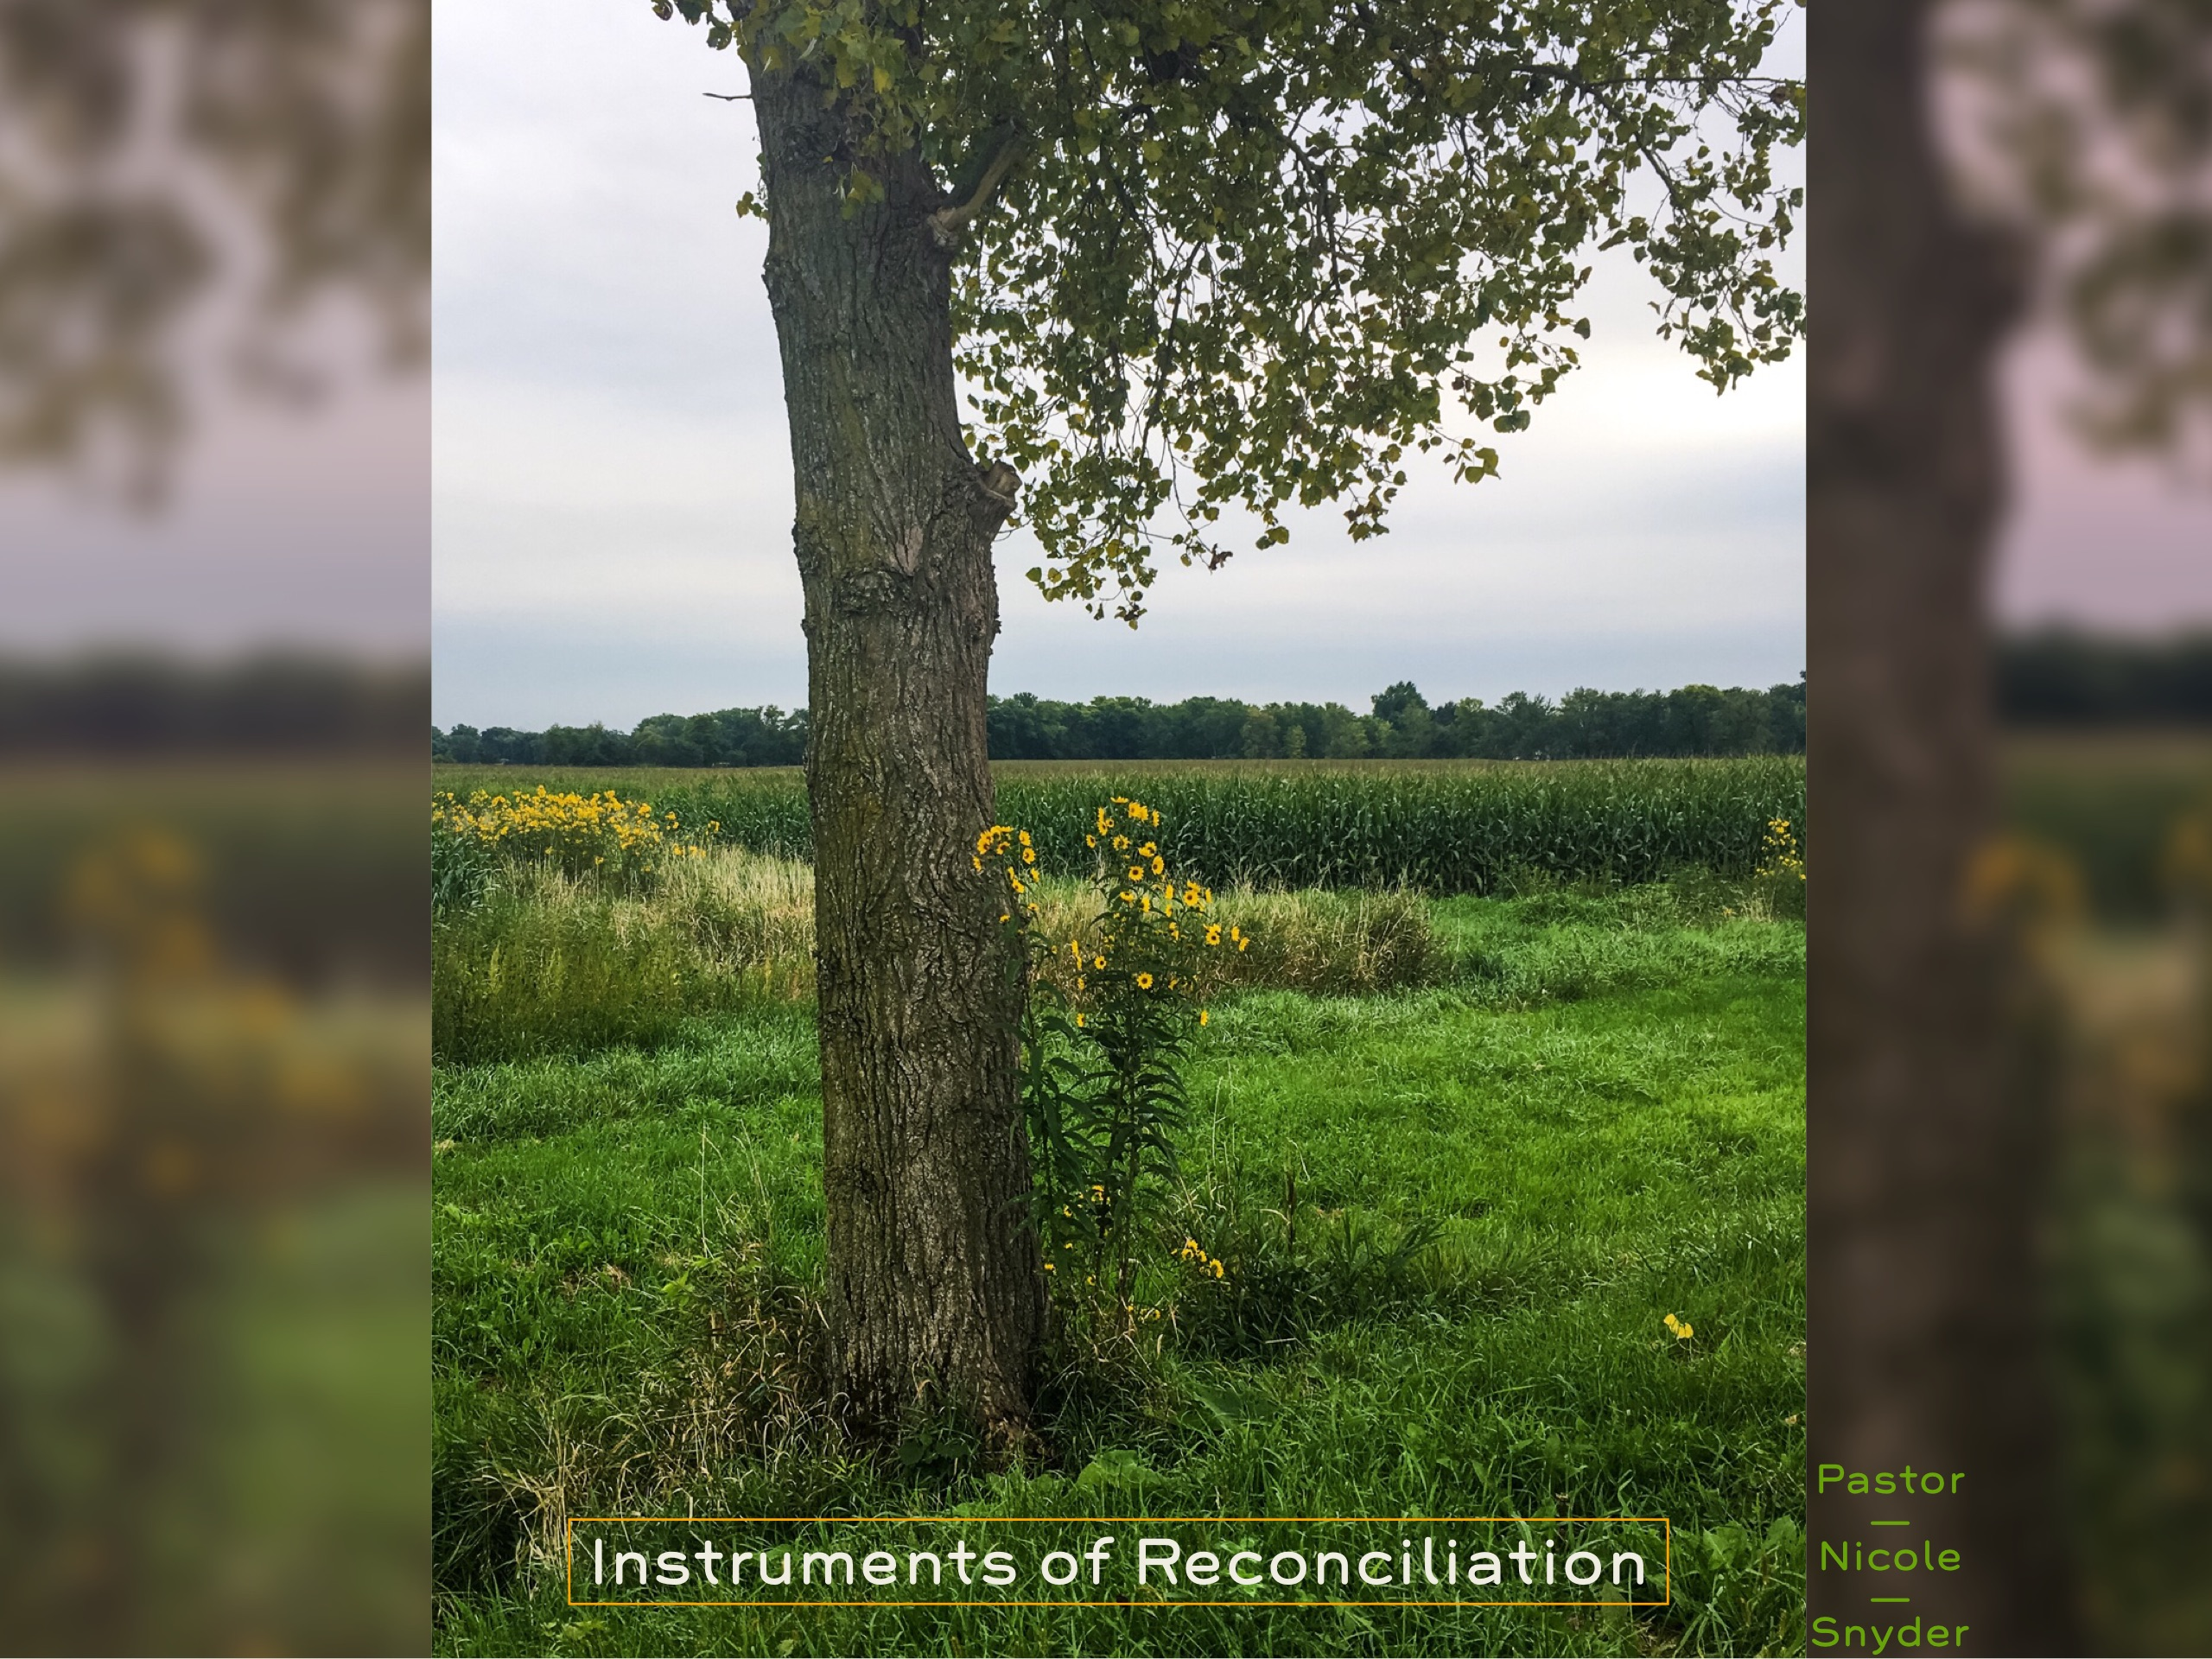 Instruments of Reconciliation